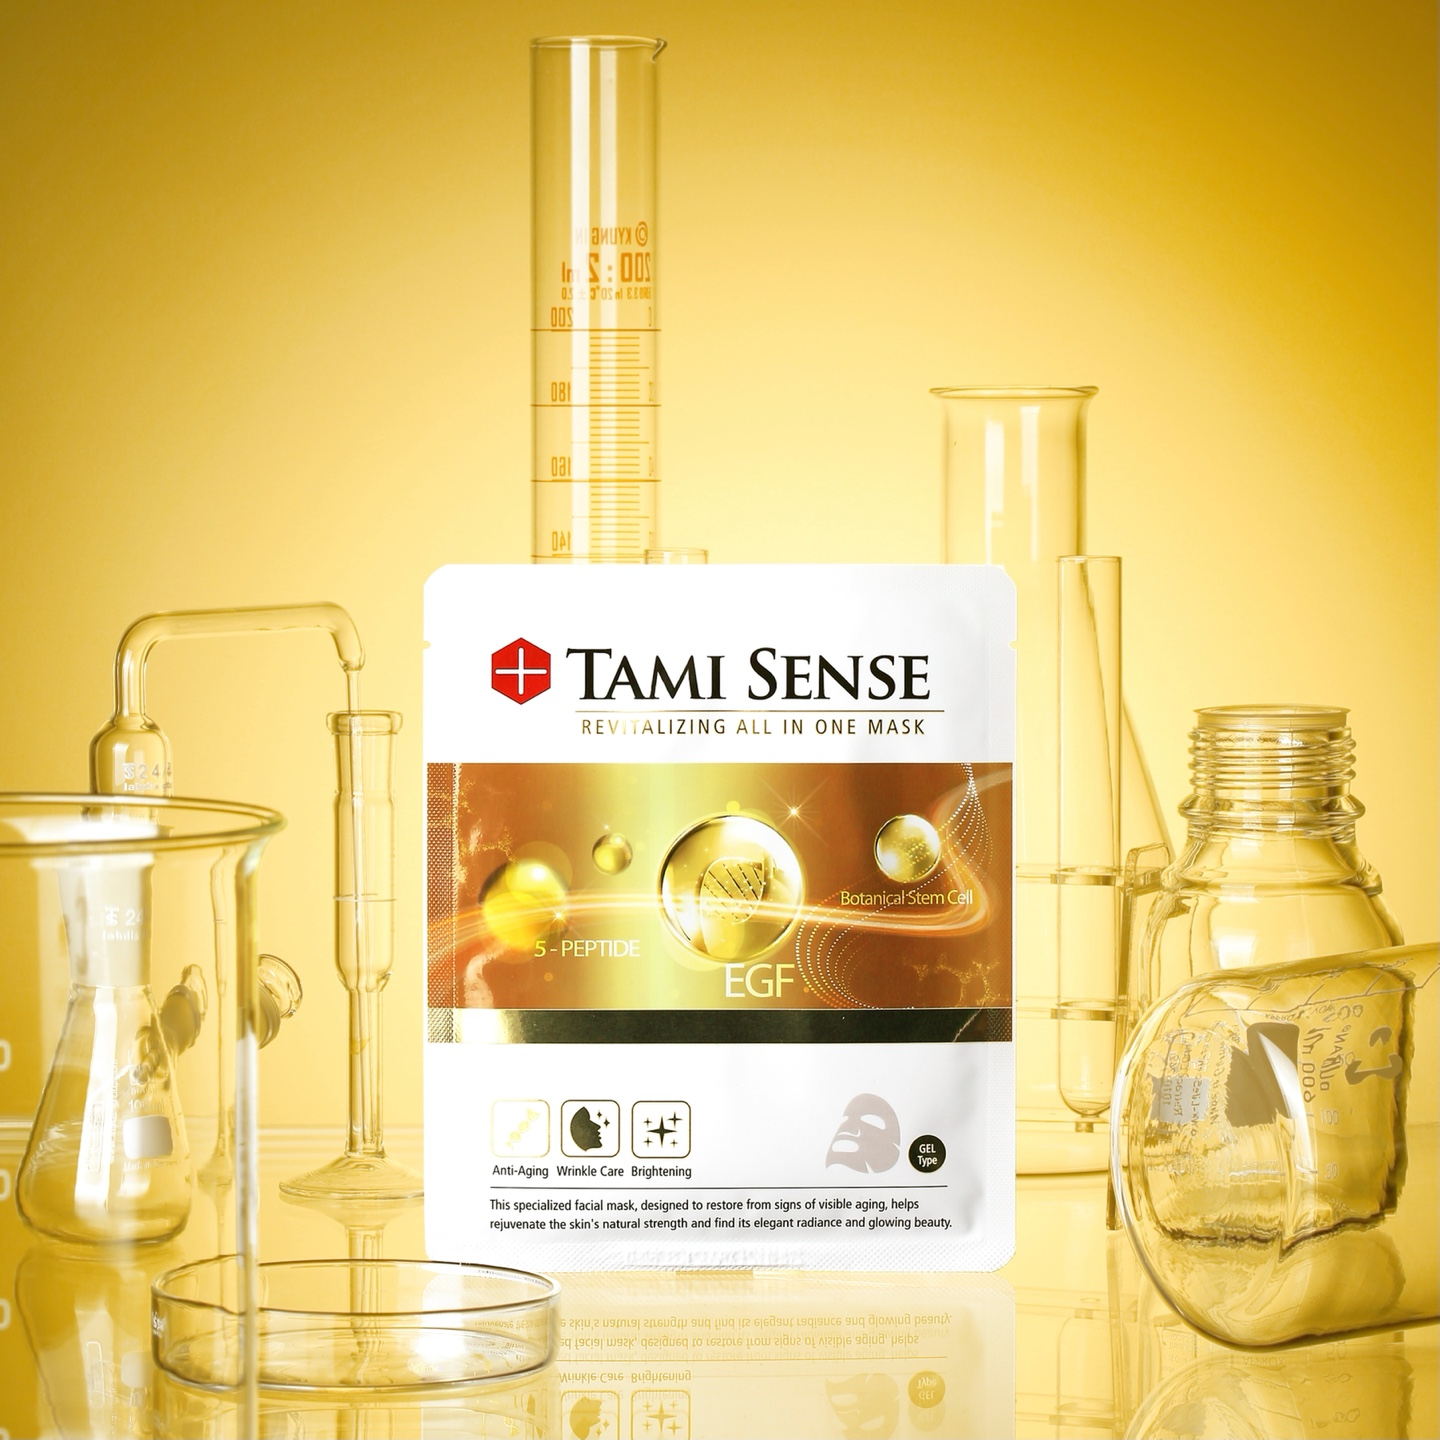 Tami Sense Launches the All-New Revitalizing All-in-One Mask